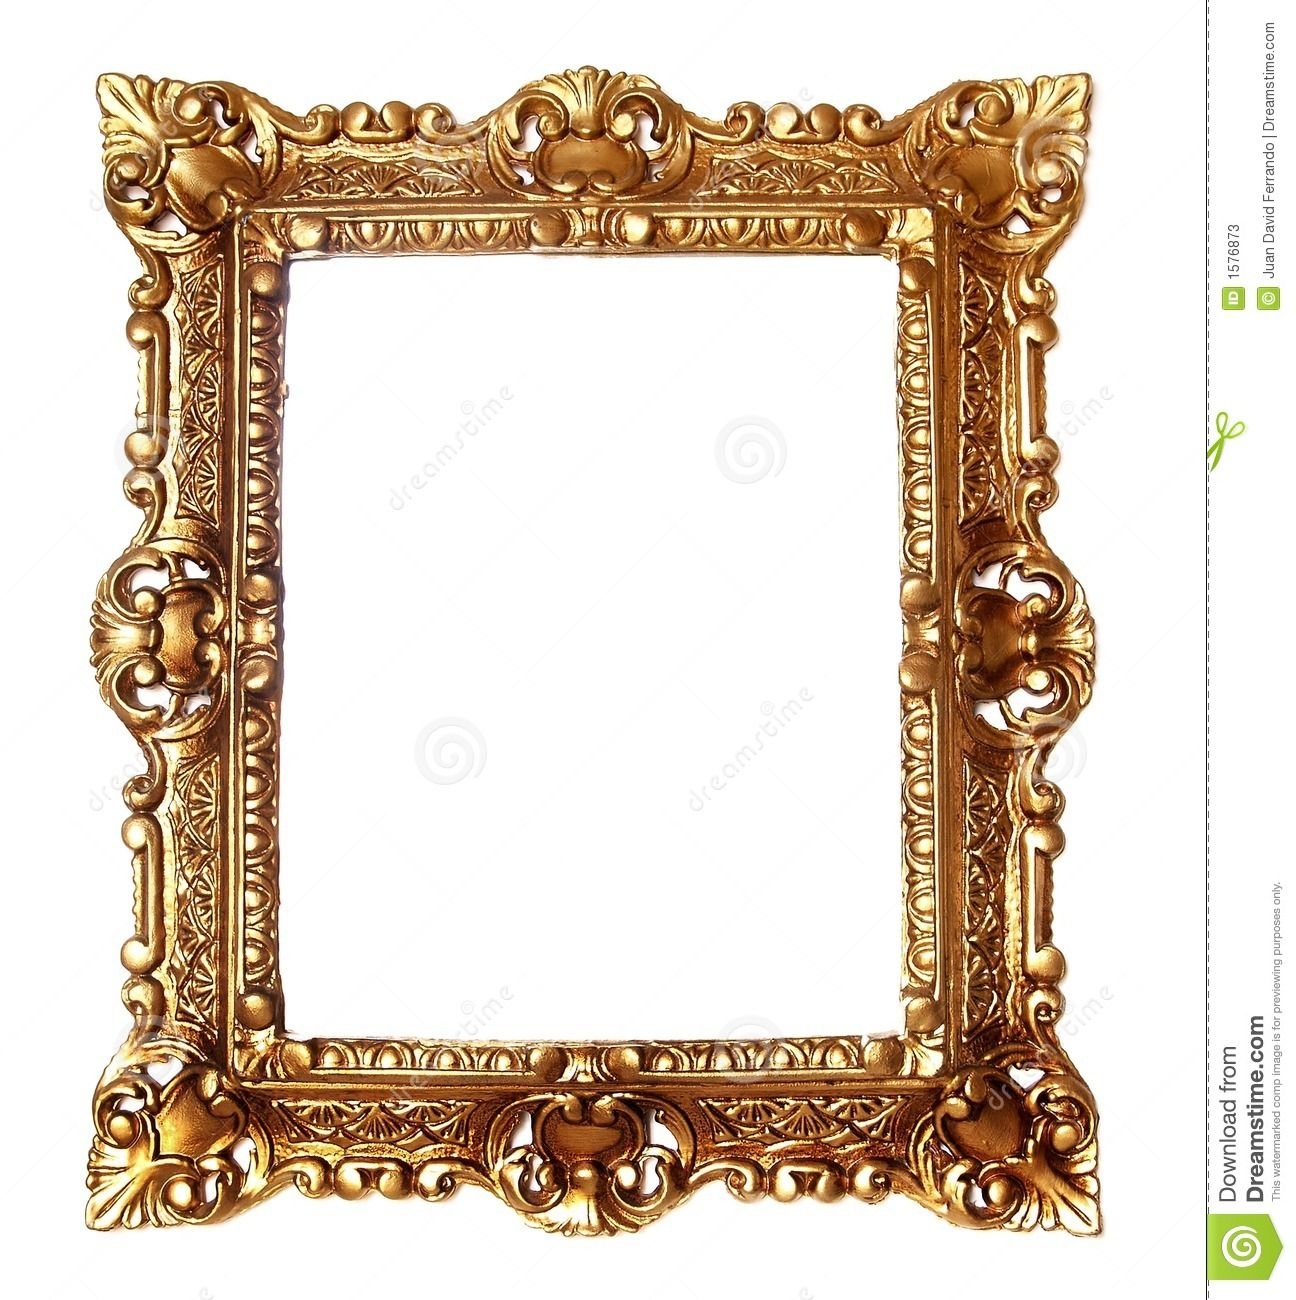 Antique Frame Clipart Gold.